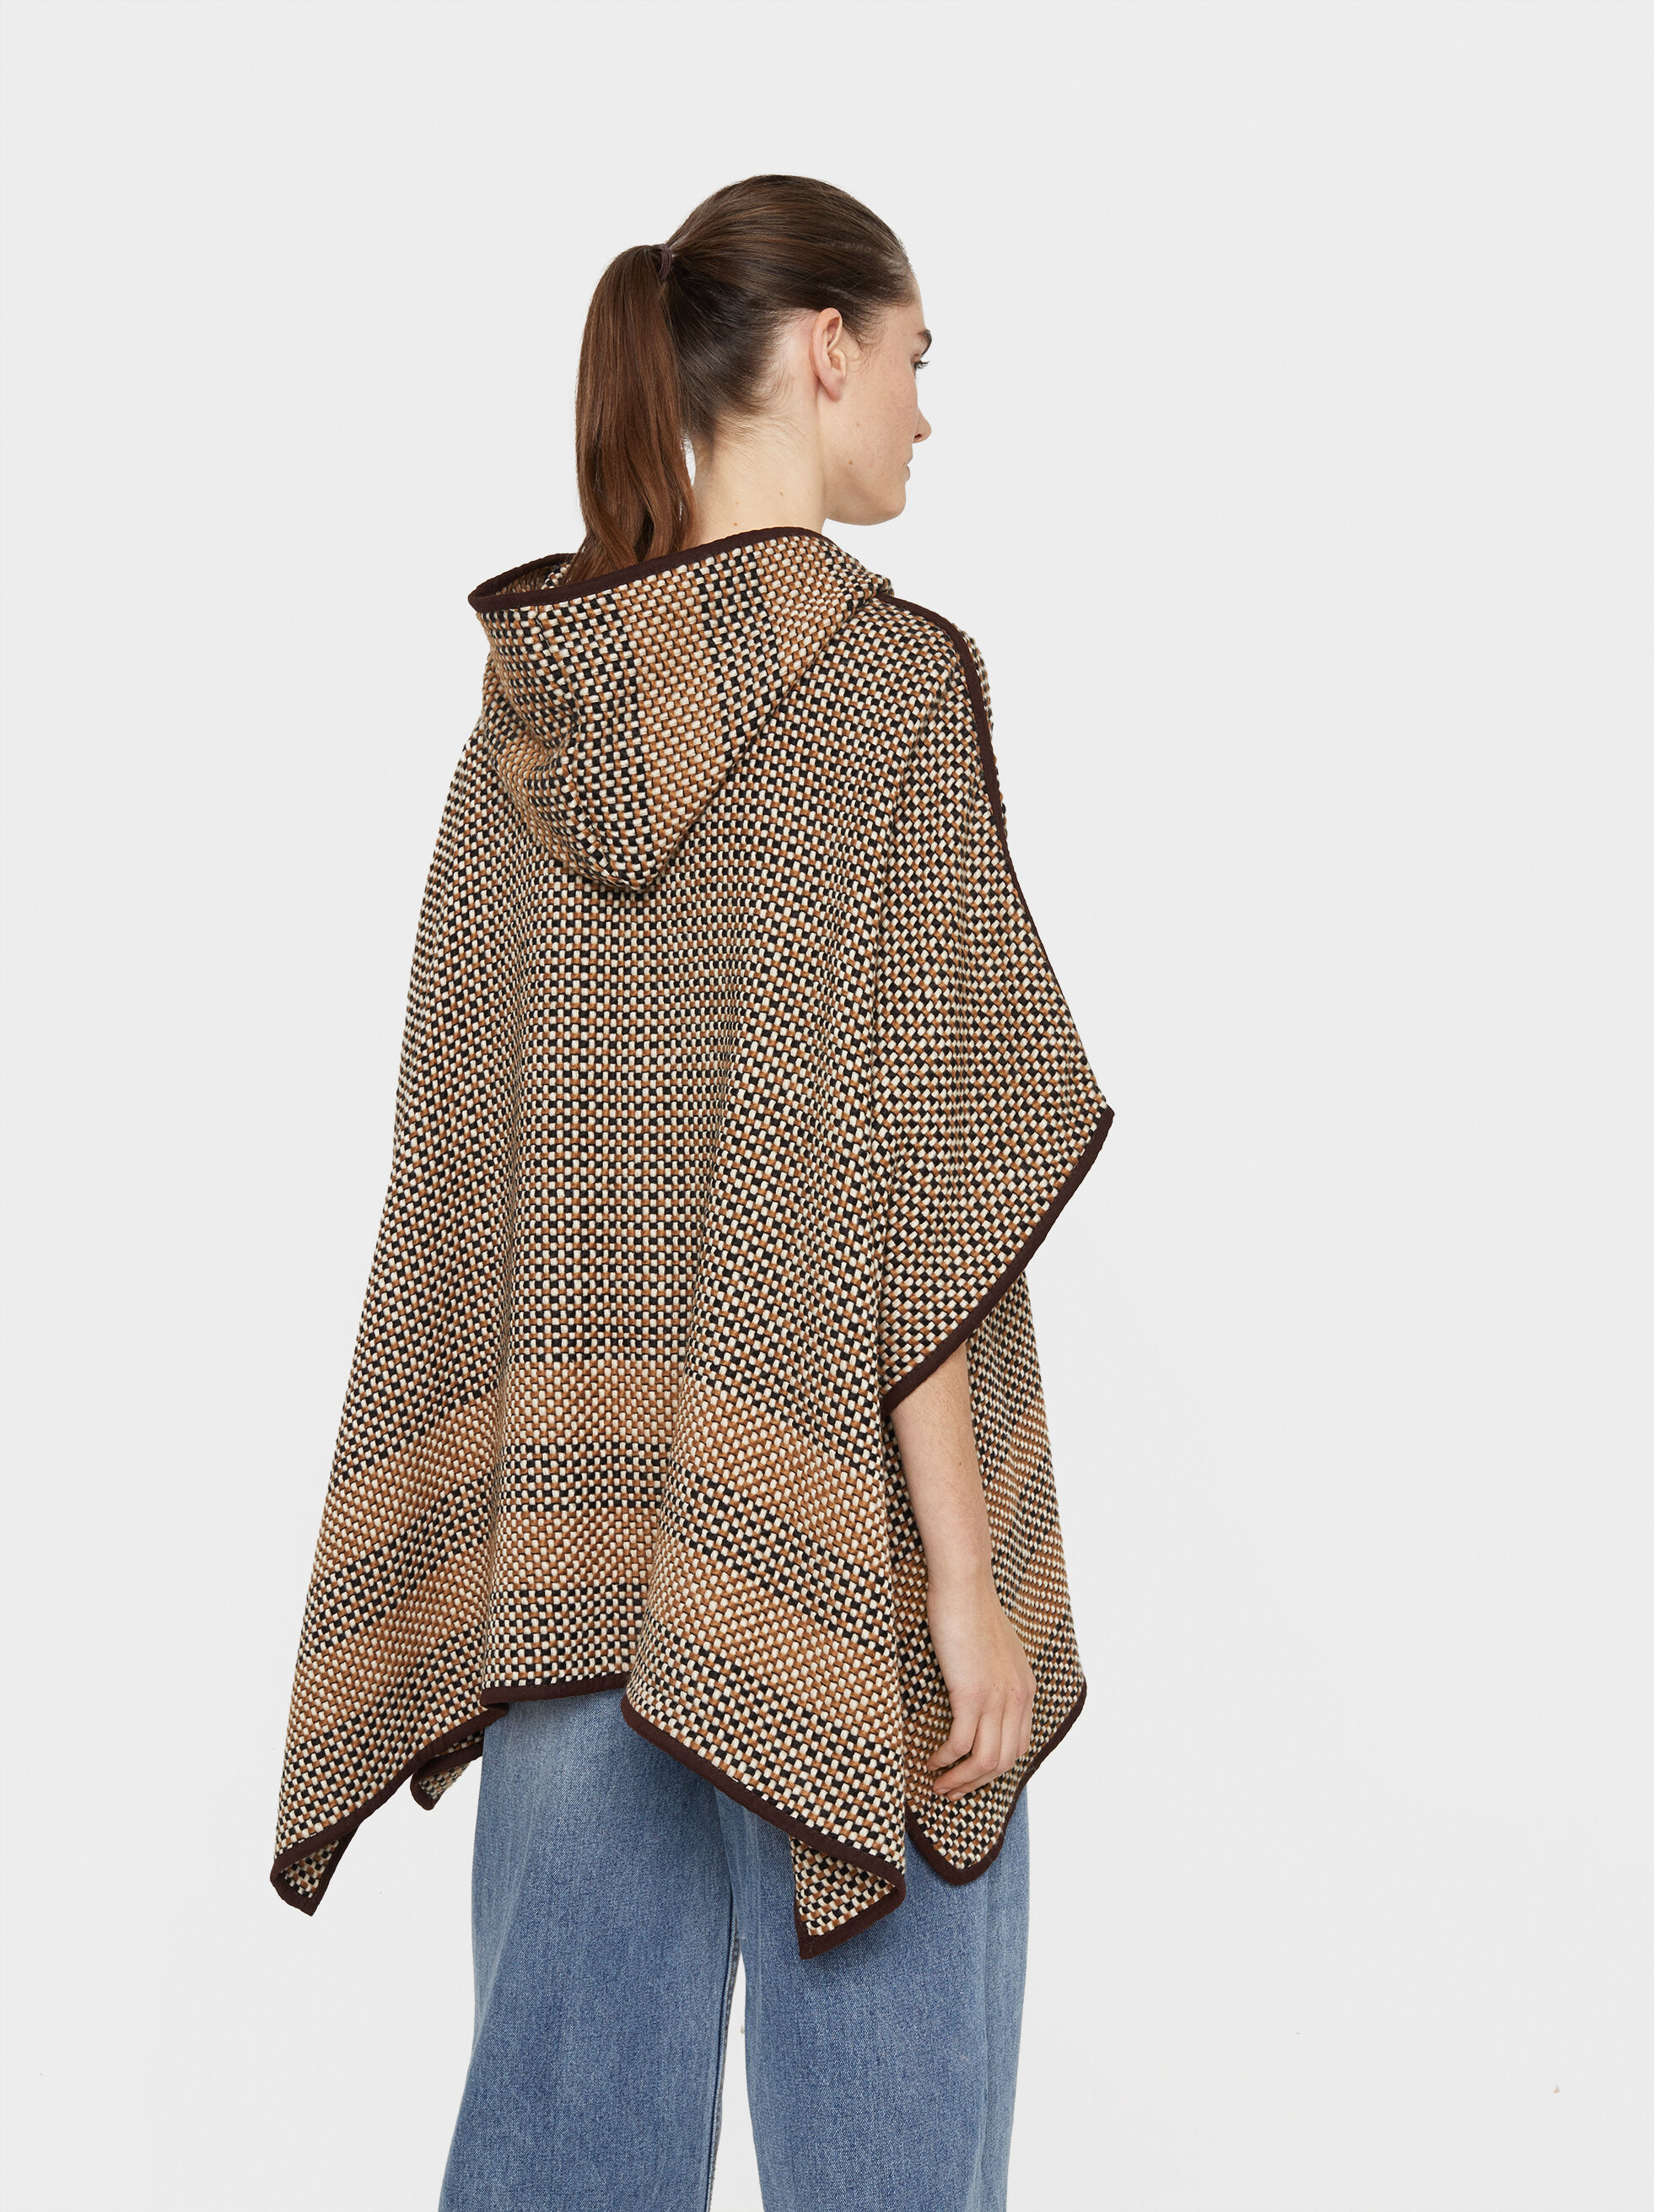 Hooded Poncho, Camel, hi-res